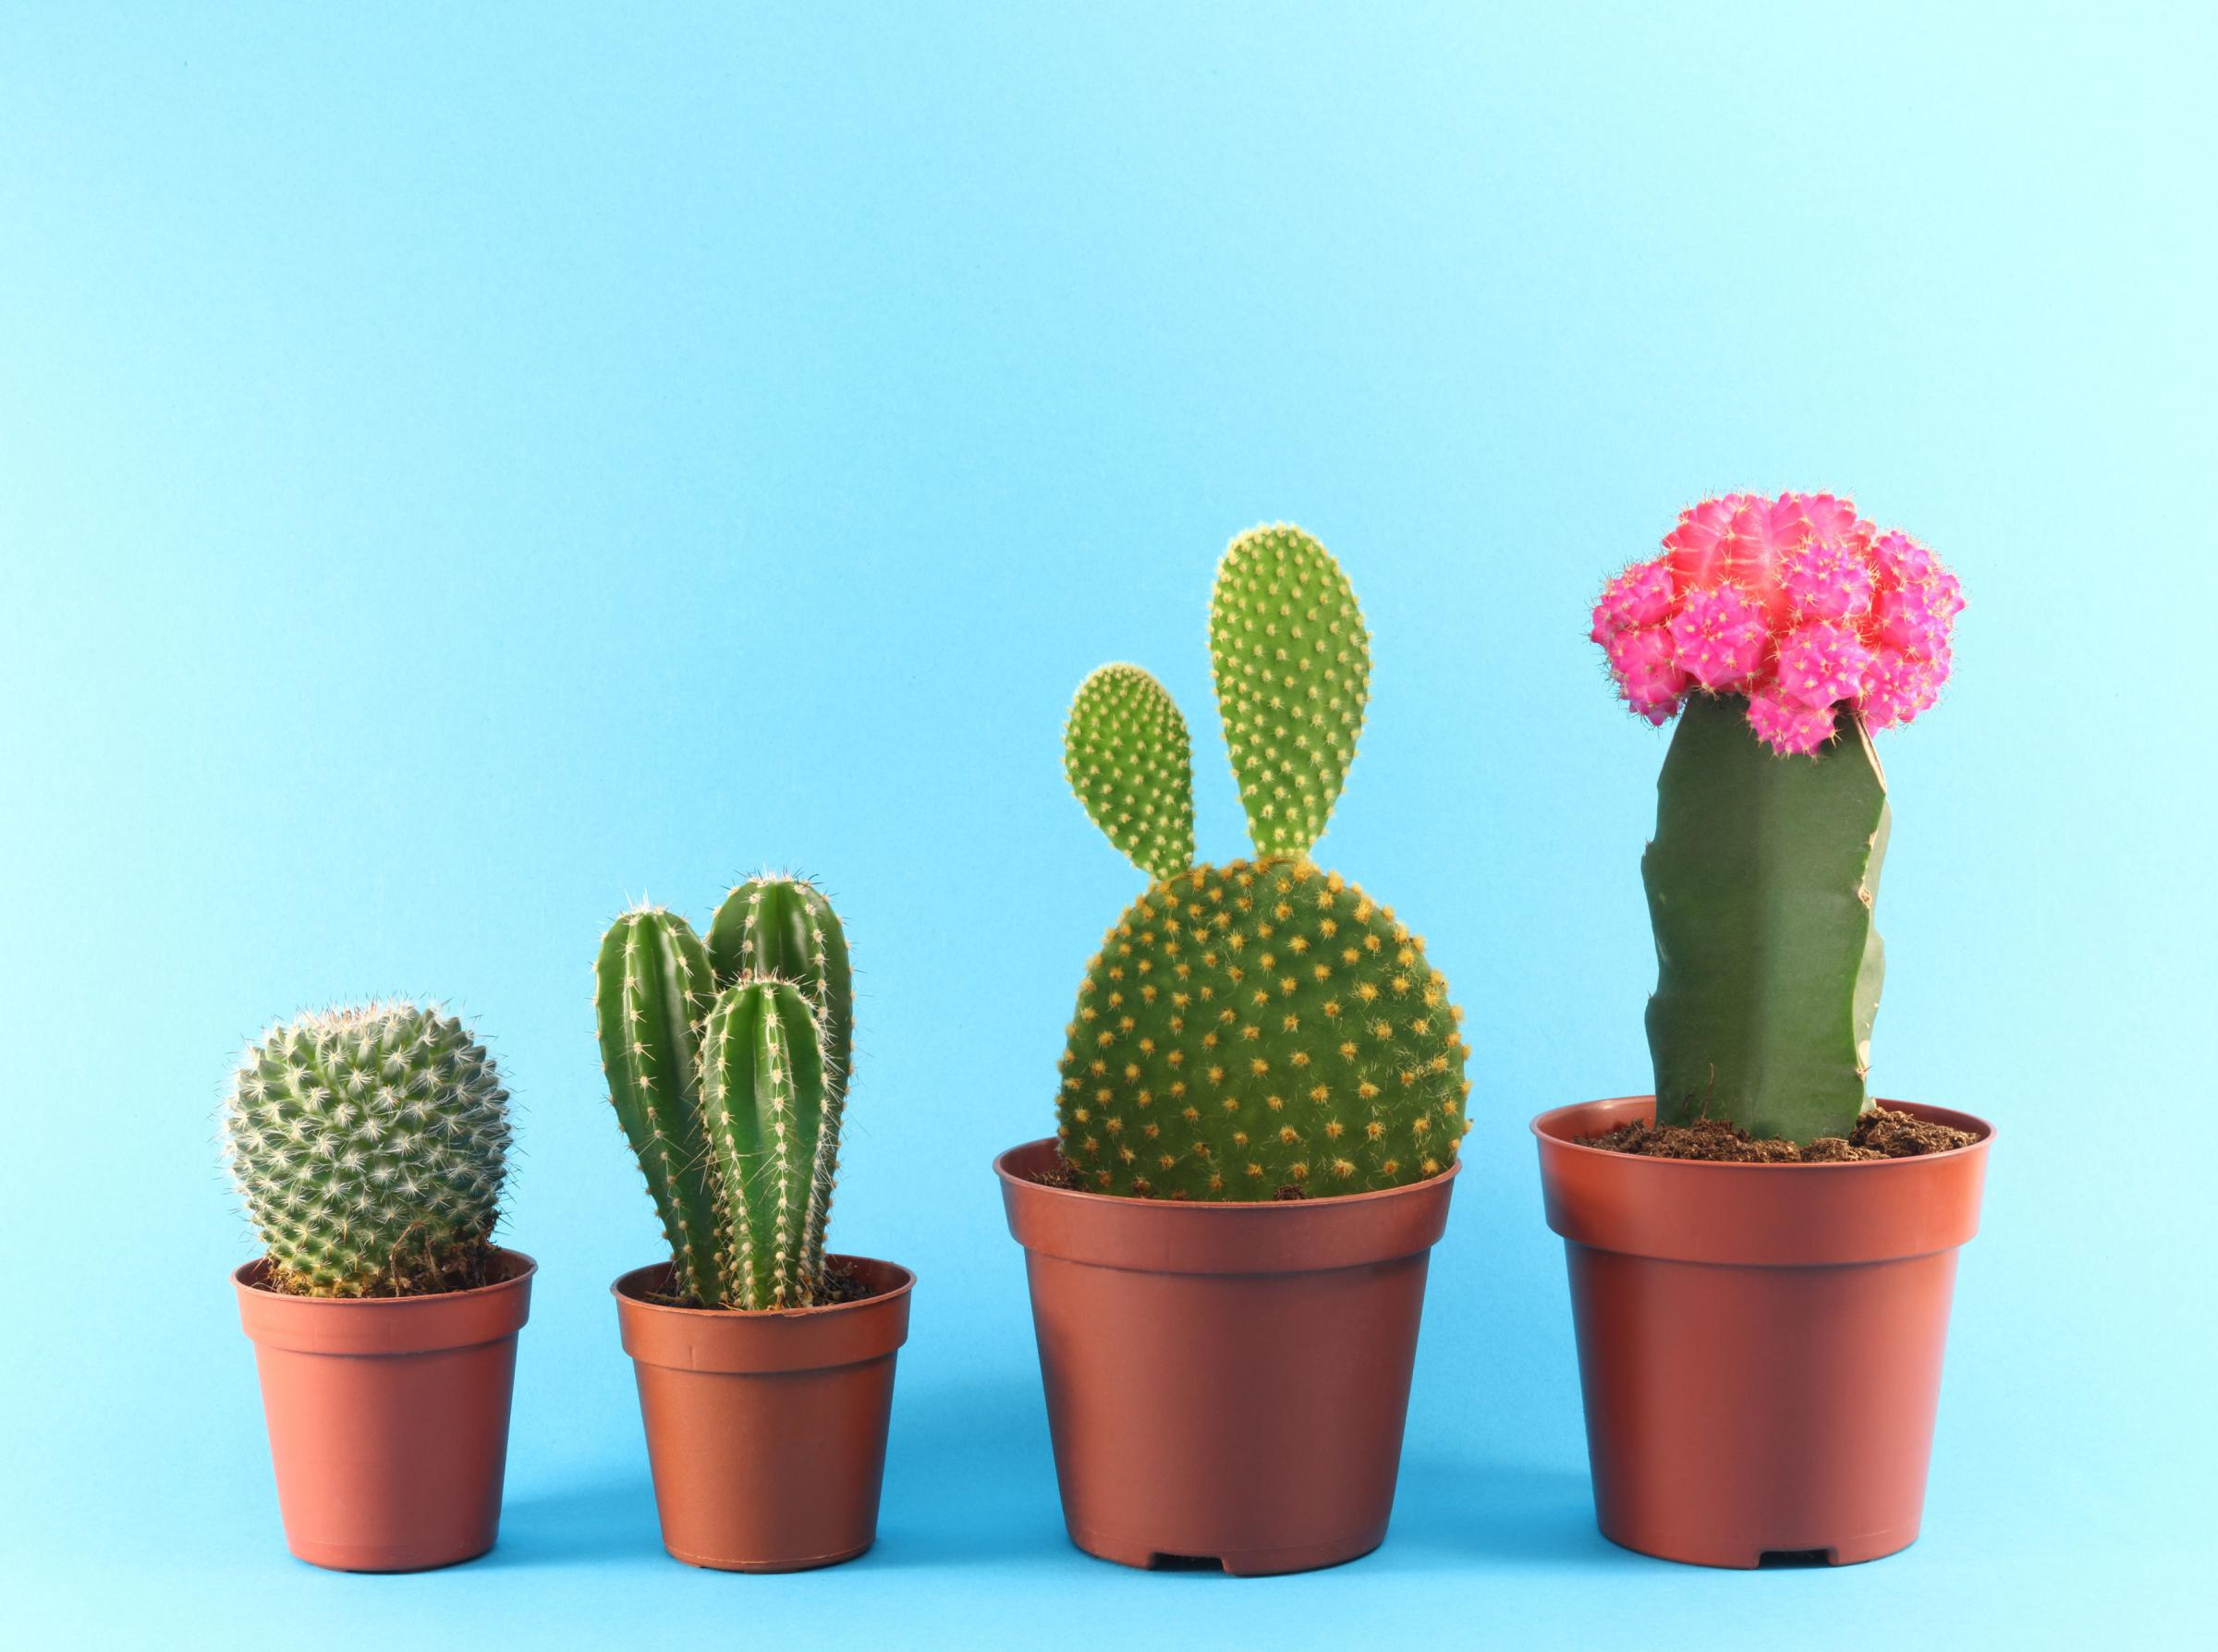 Gardening: How to tackle prickly problems posed by cacti